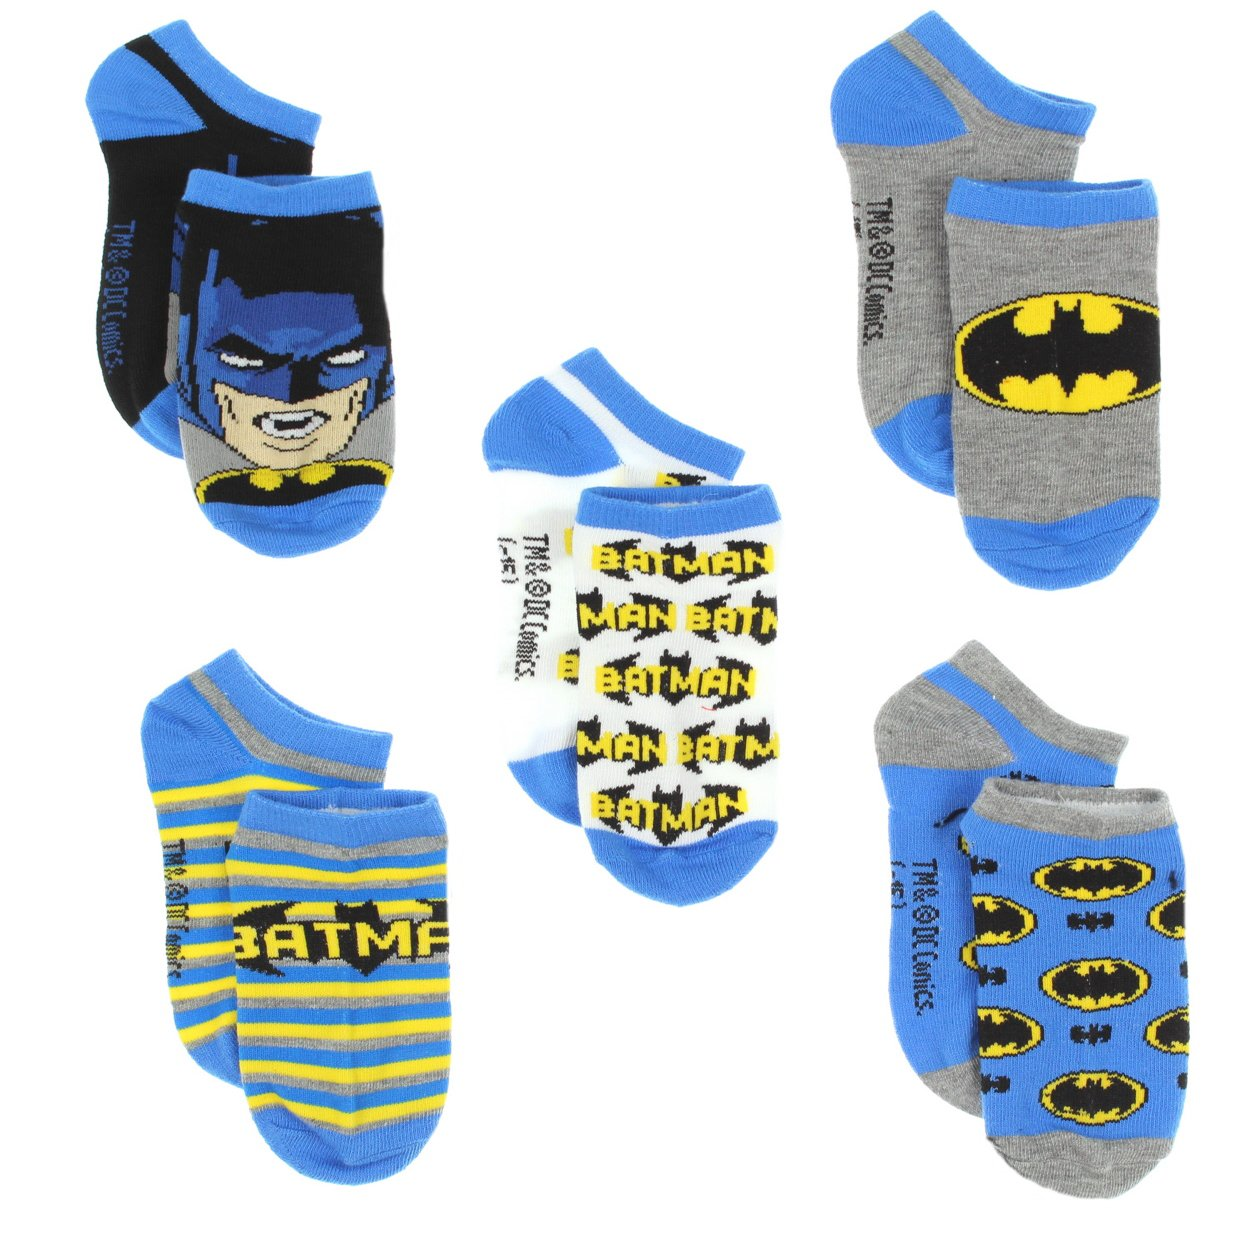 Batman Boys Multi pack Socks (Toddler/Little Kid) manufacturer